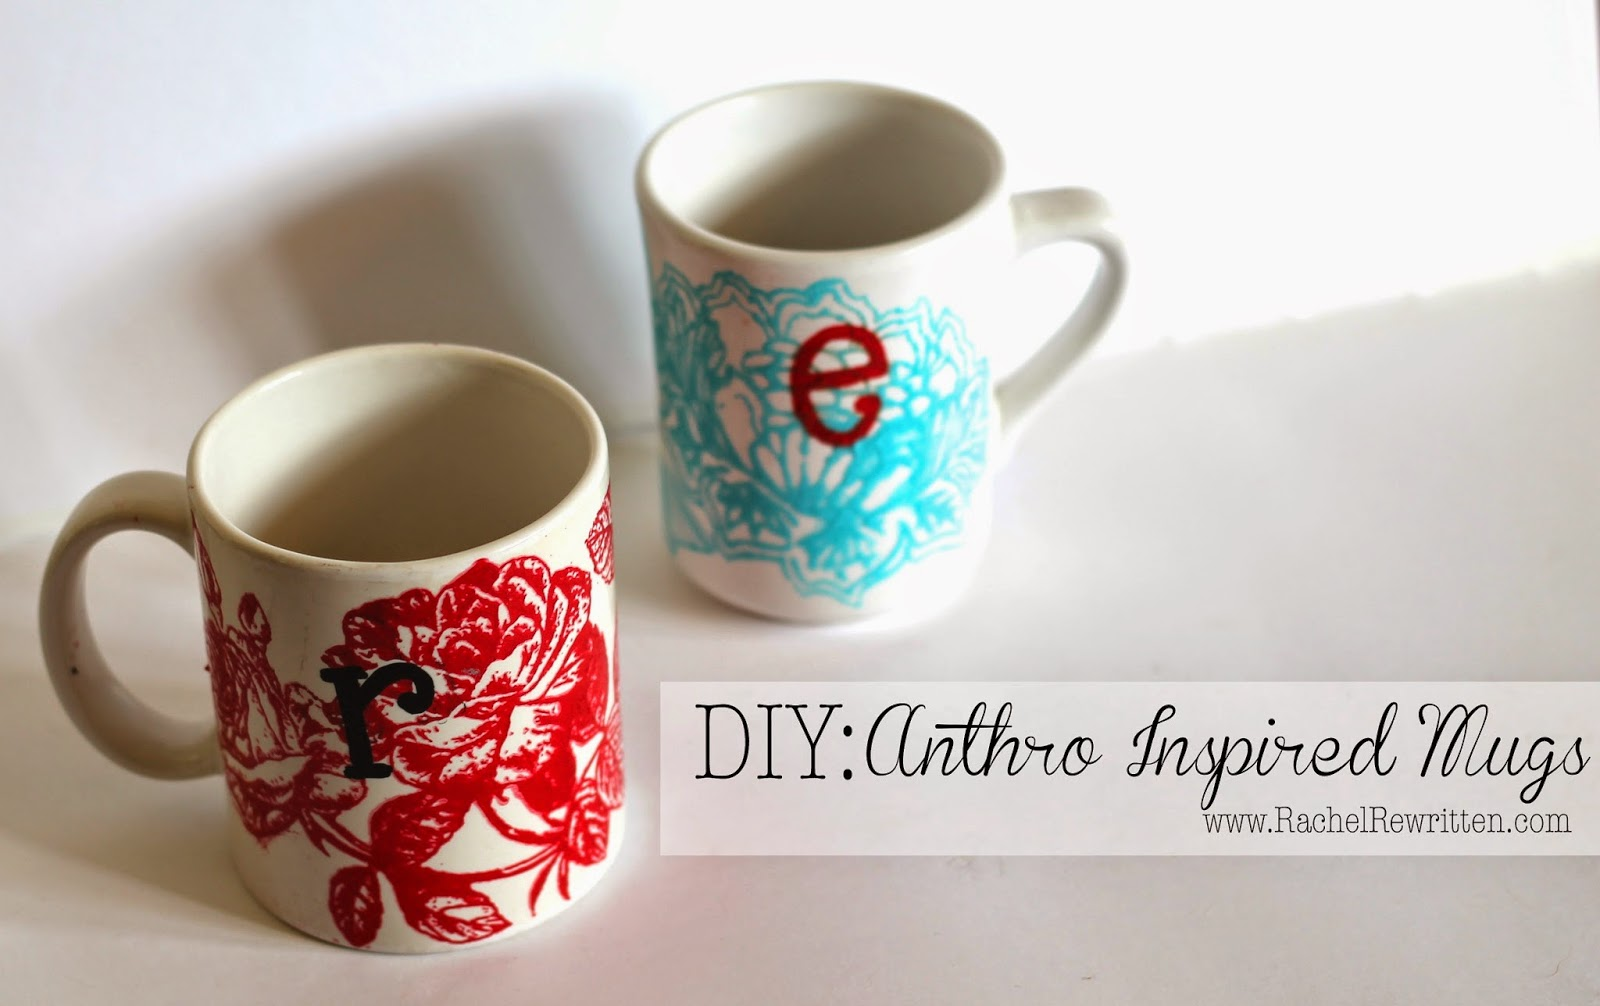 rachel rewritten diy anthro inspired mugs